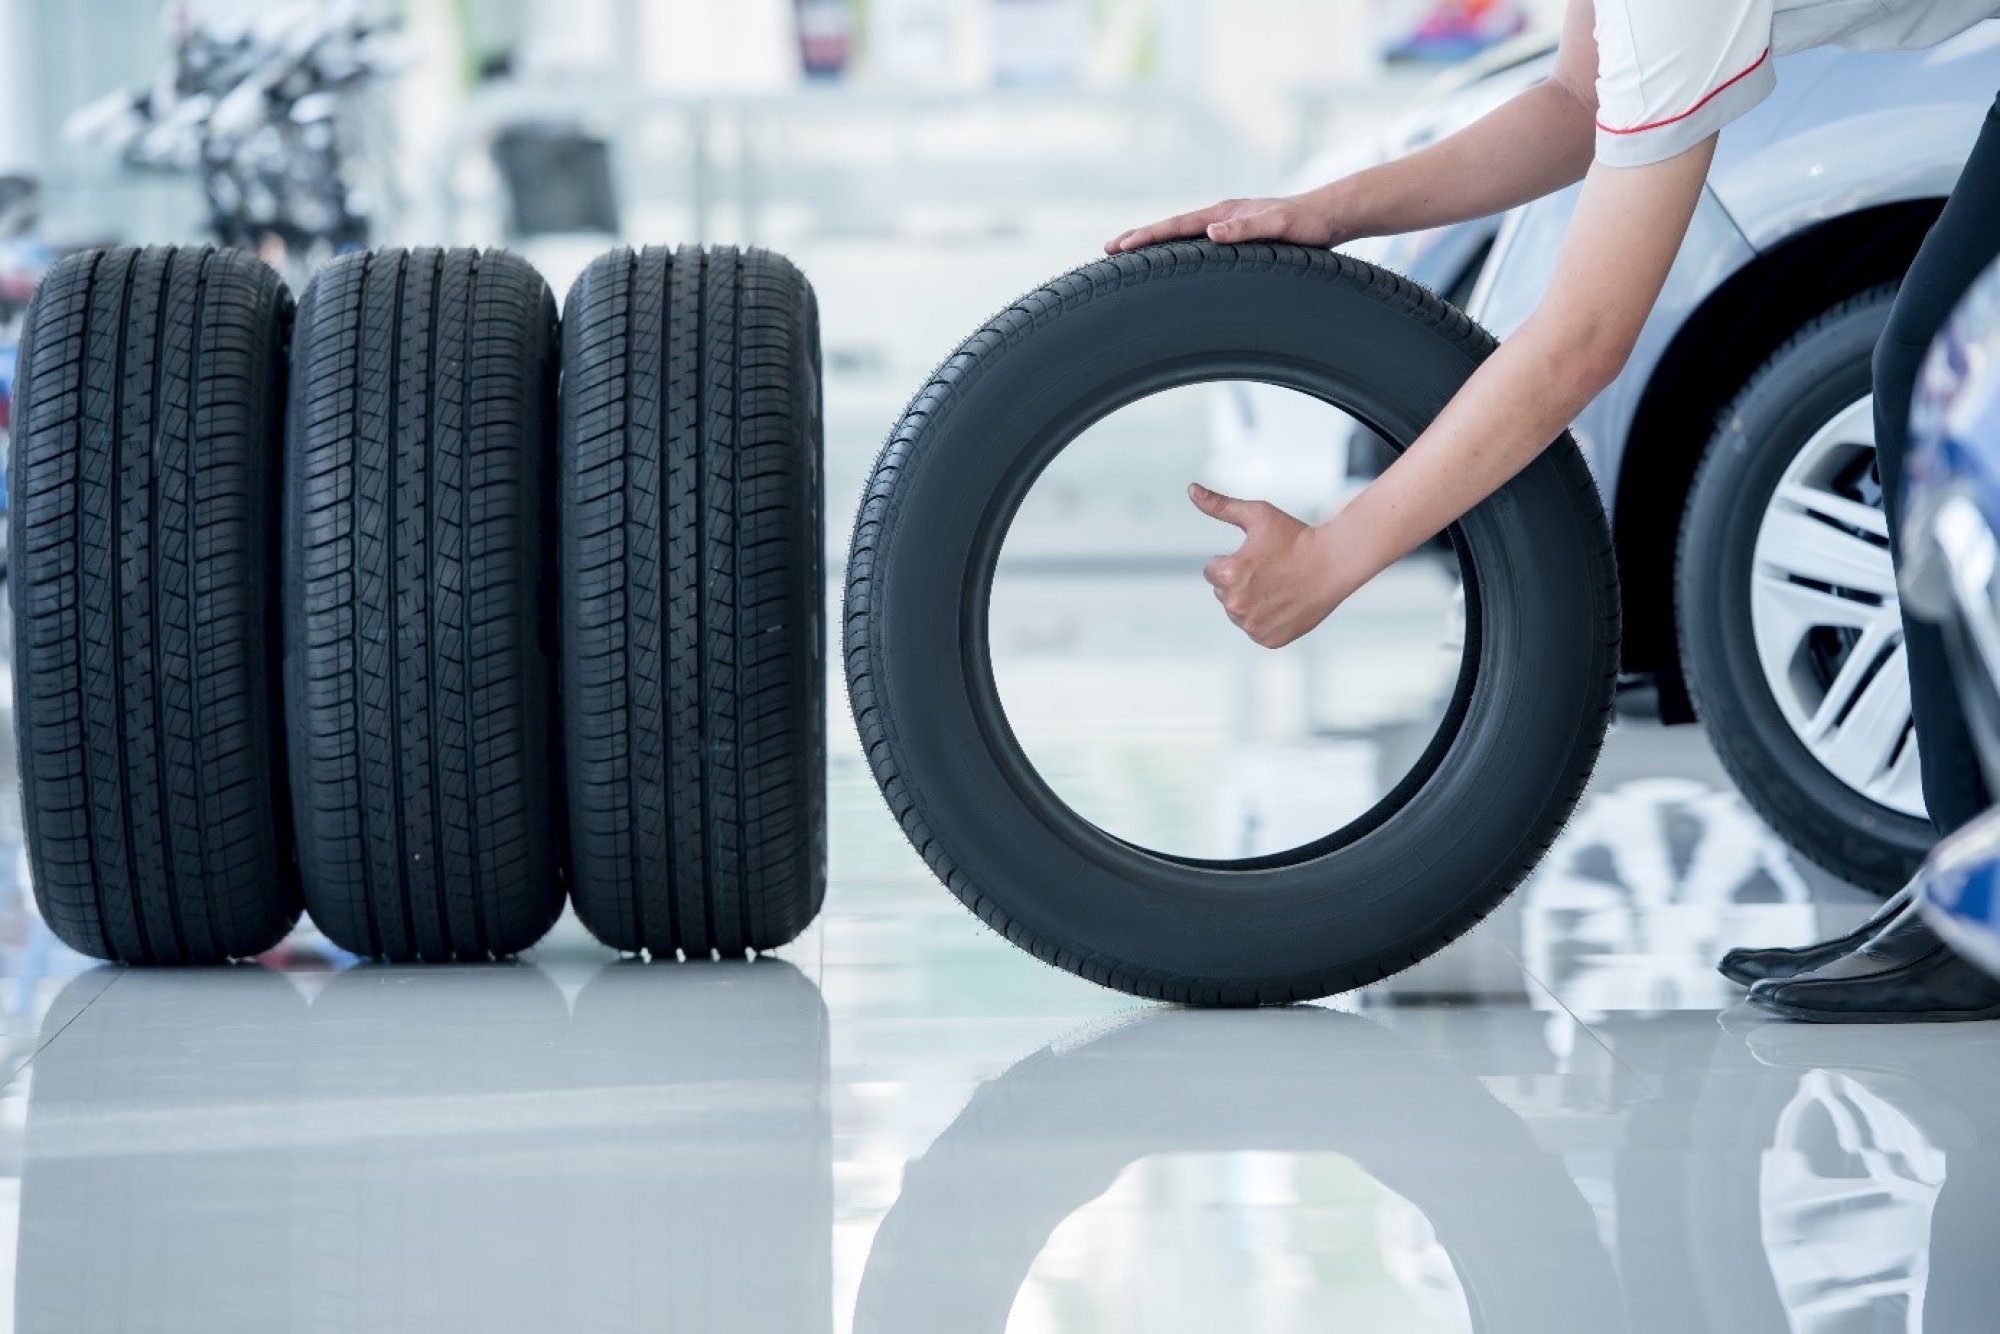 Carbon black is commonly used in tires.